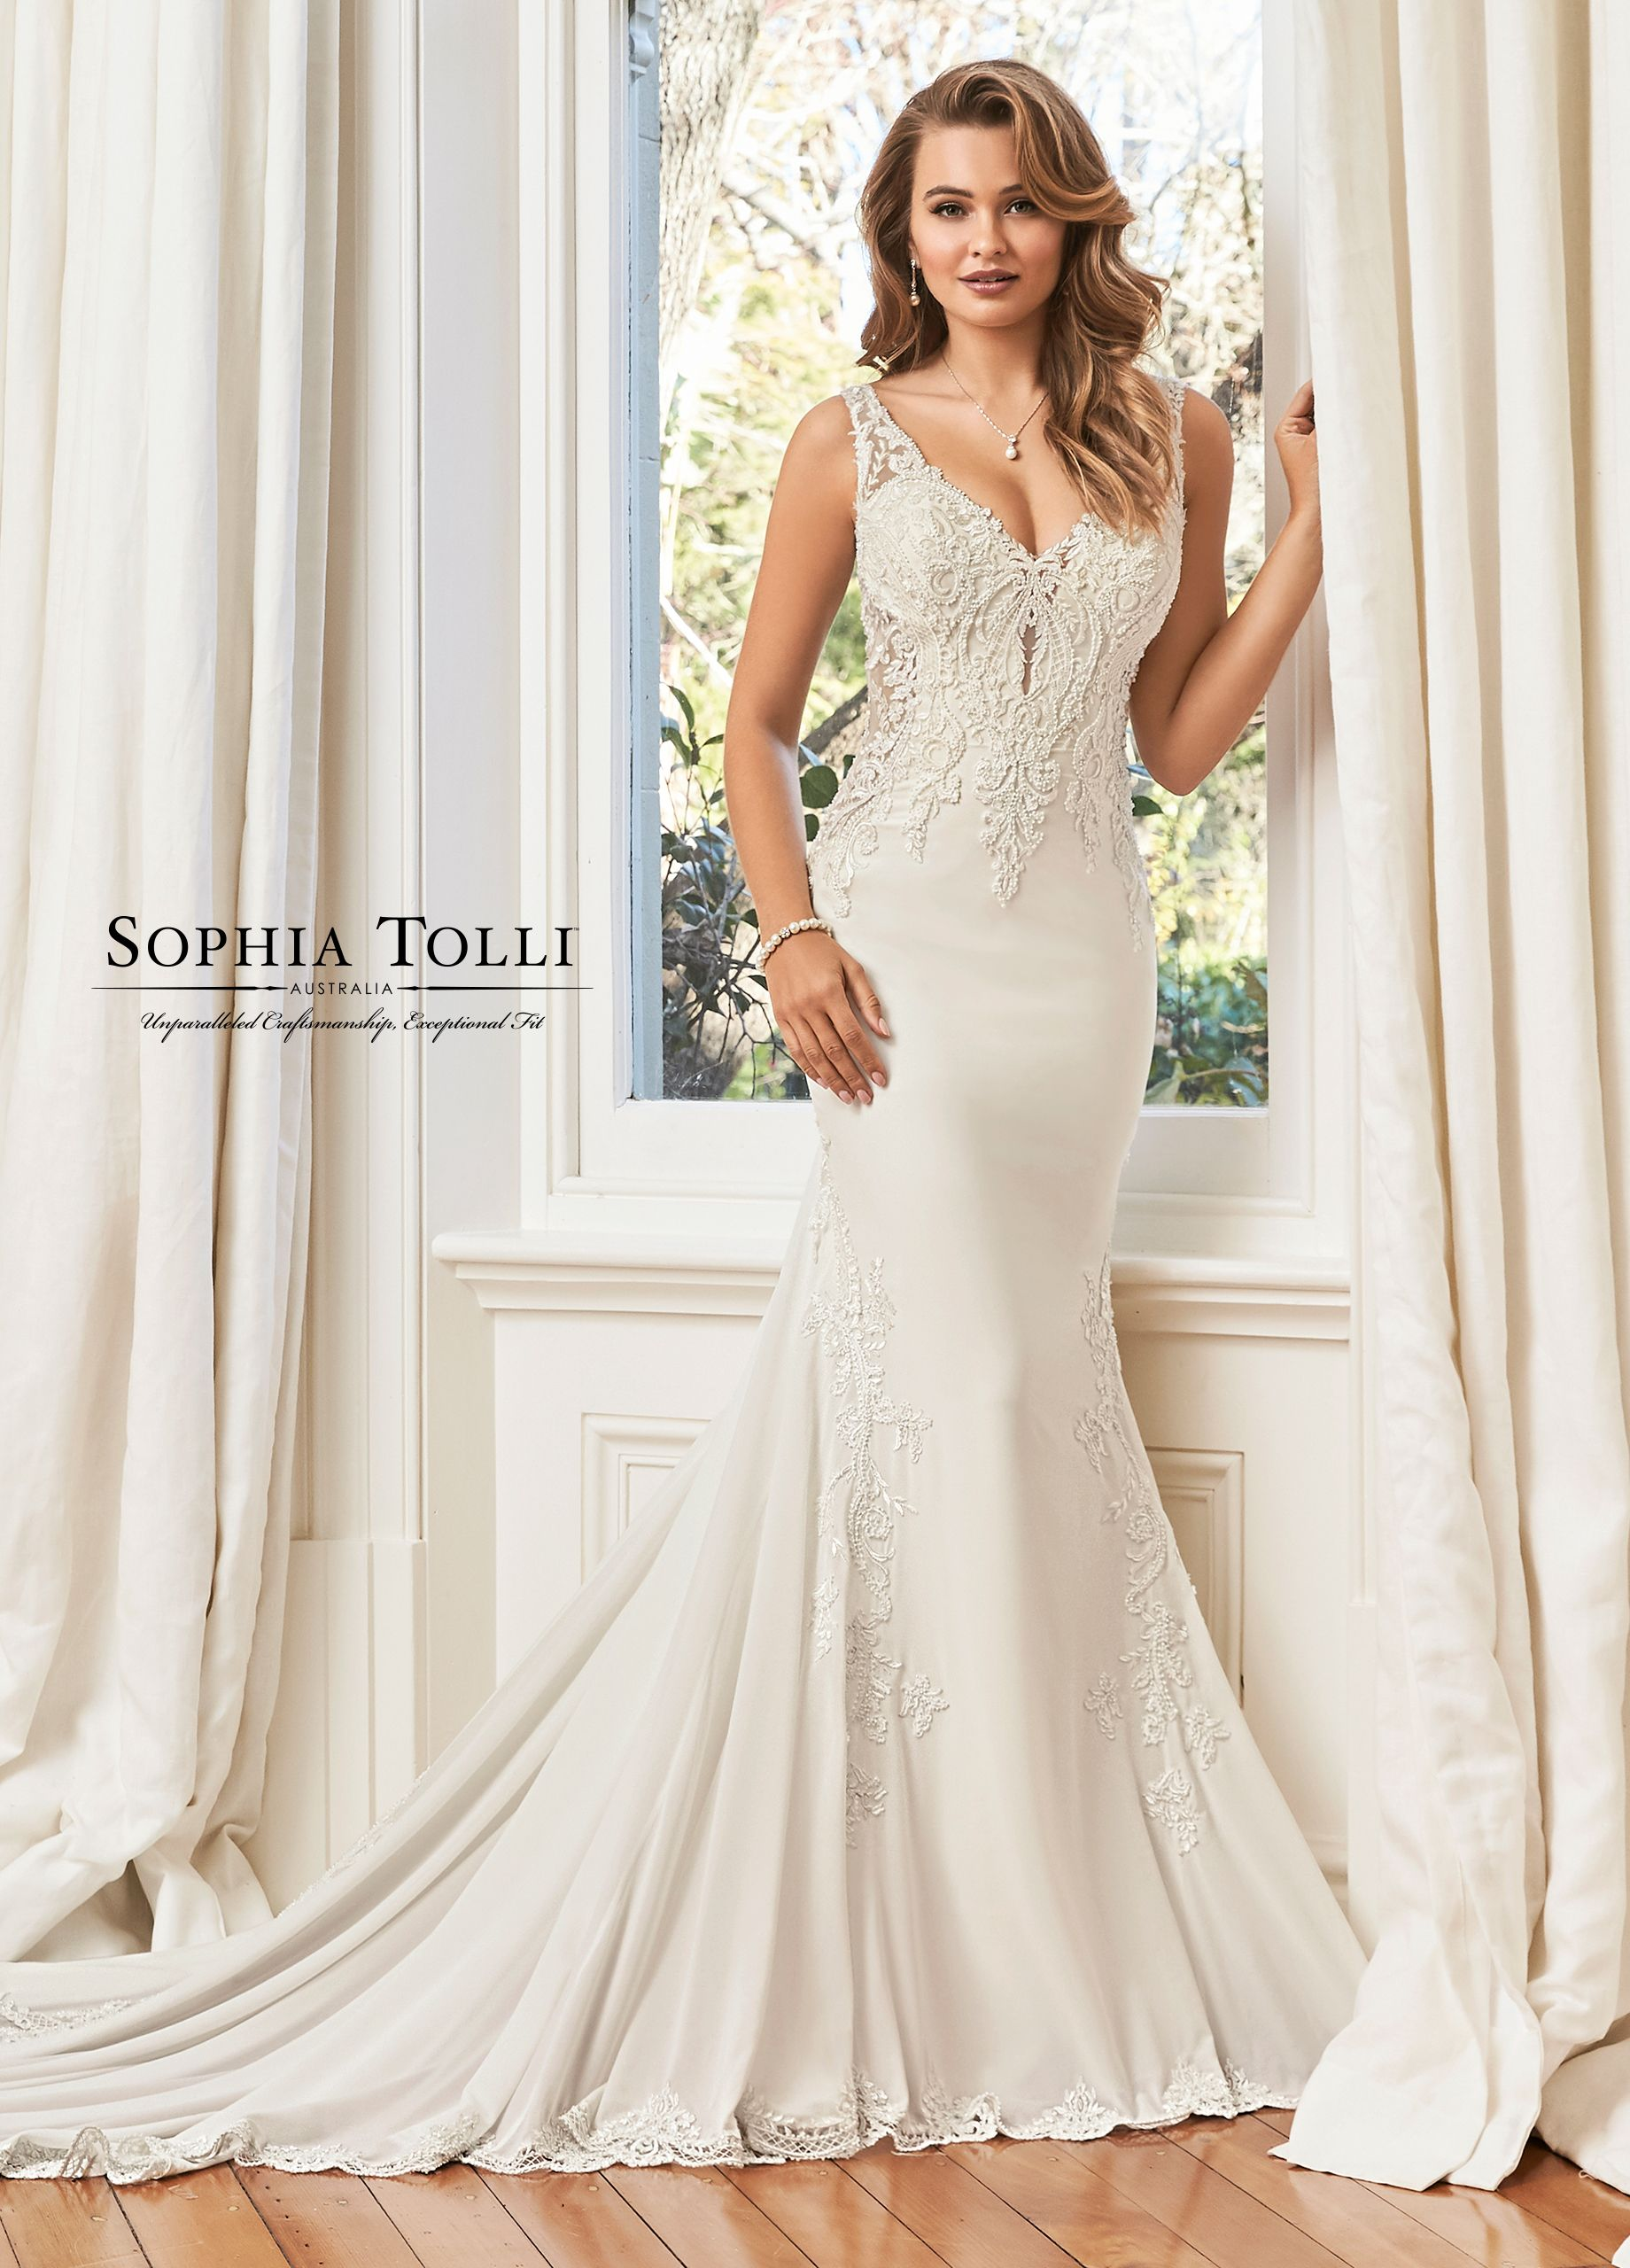 Lace Chiffon Fit And Flare Wedding Dress Y11950 Summer Online Wedding Dress Sophia Tolli Wedding Dresses Strapless Wedding Dress Sweetheart [ 2560 x 1840 Pixel ]